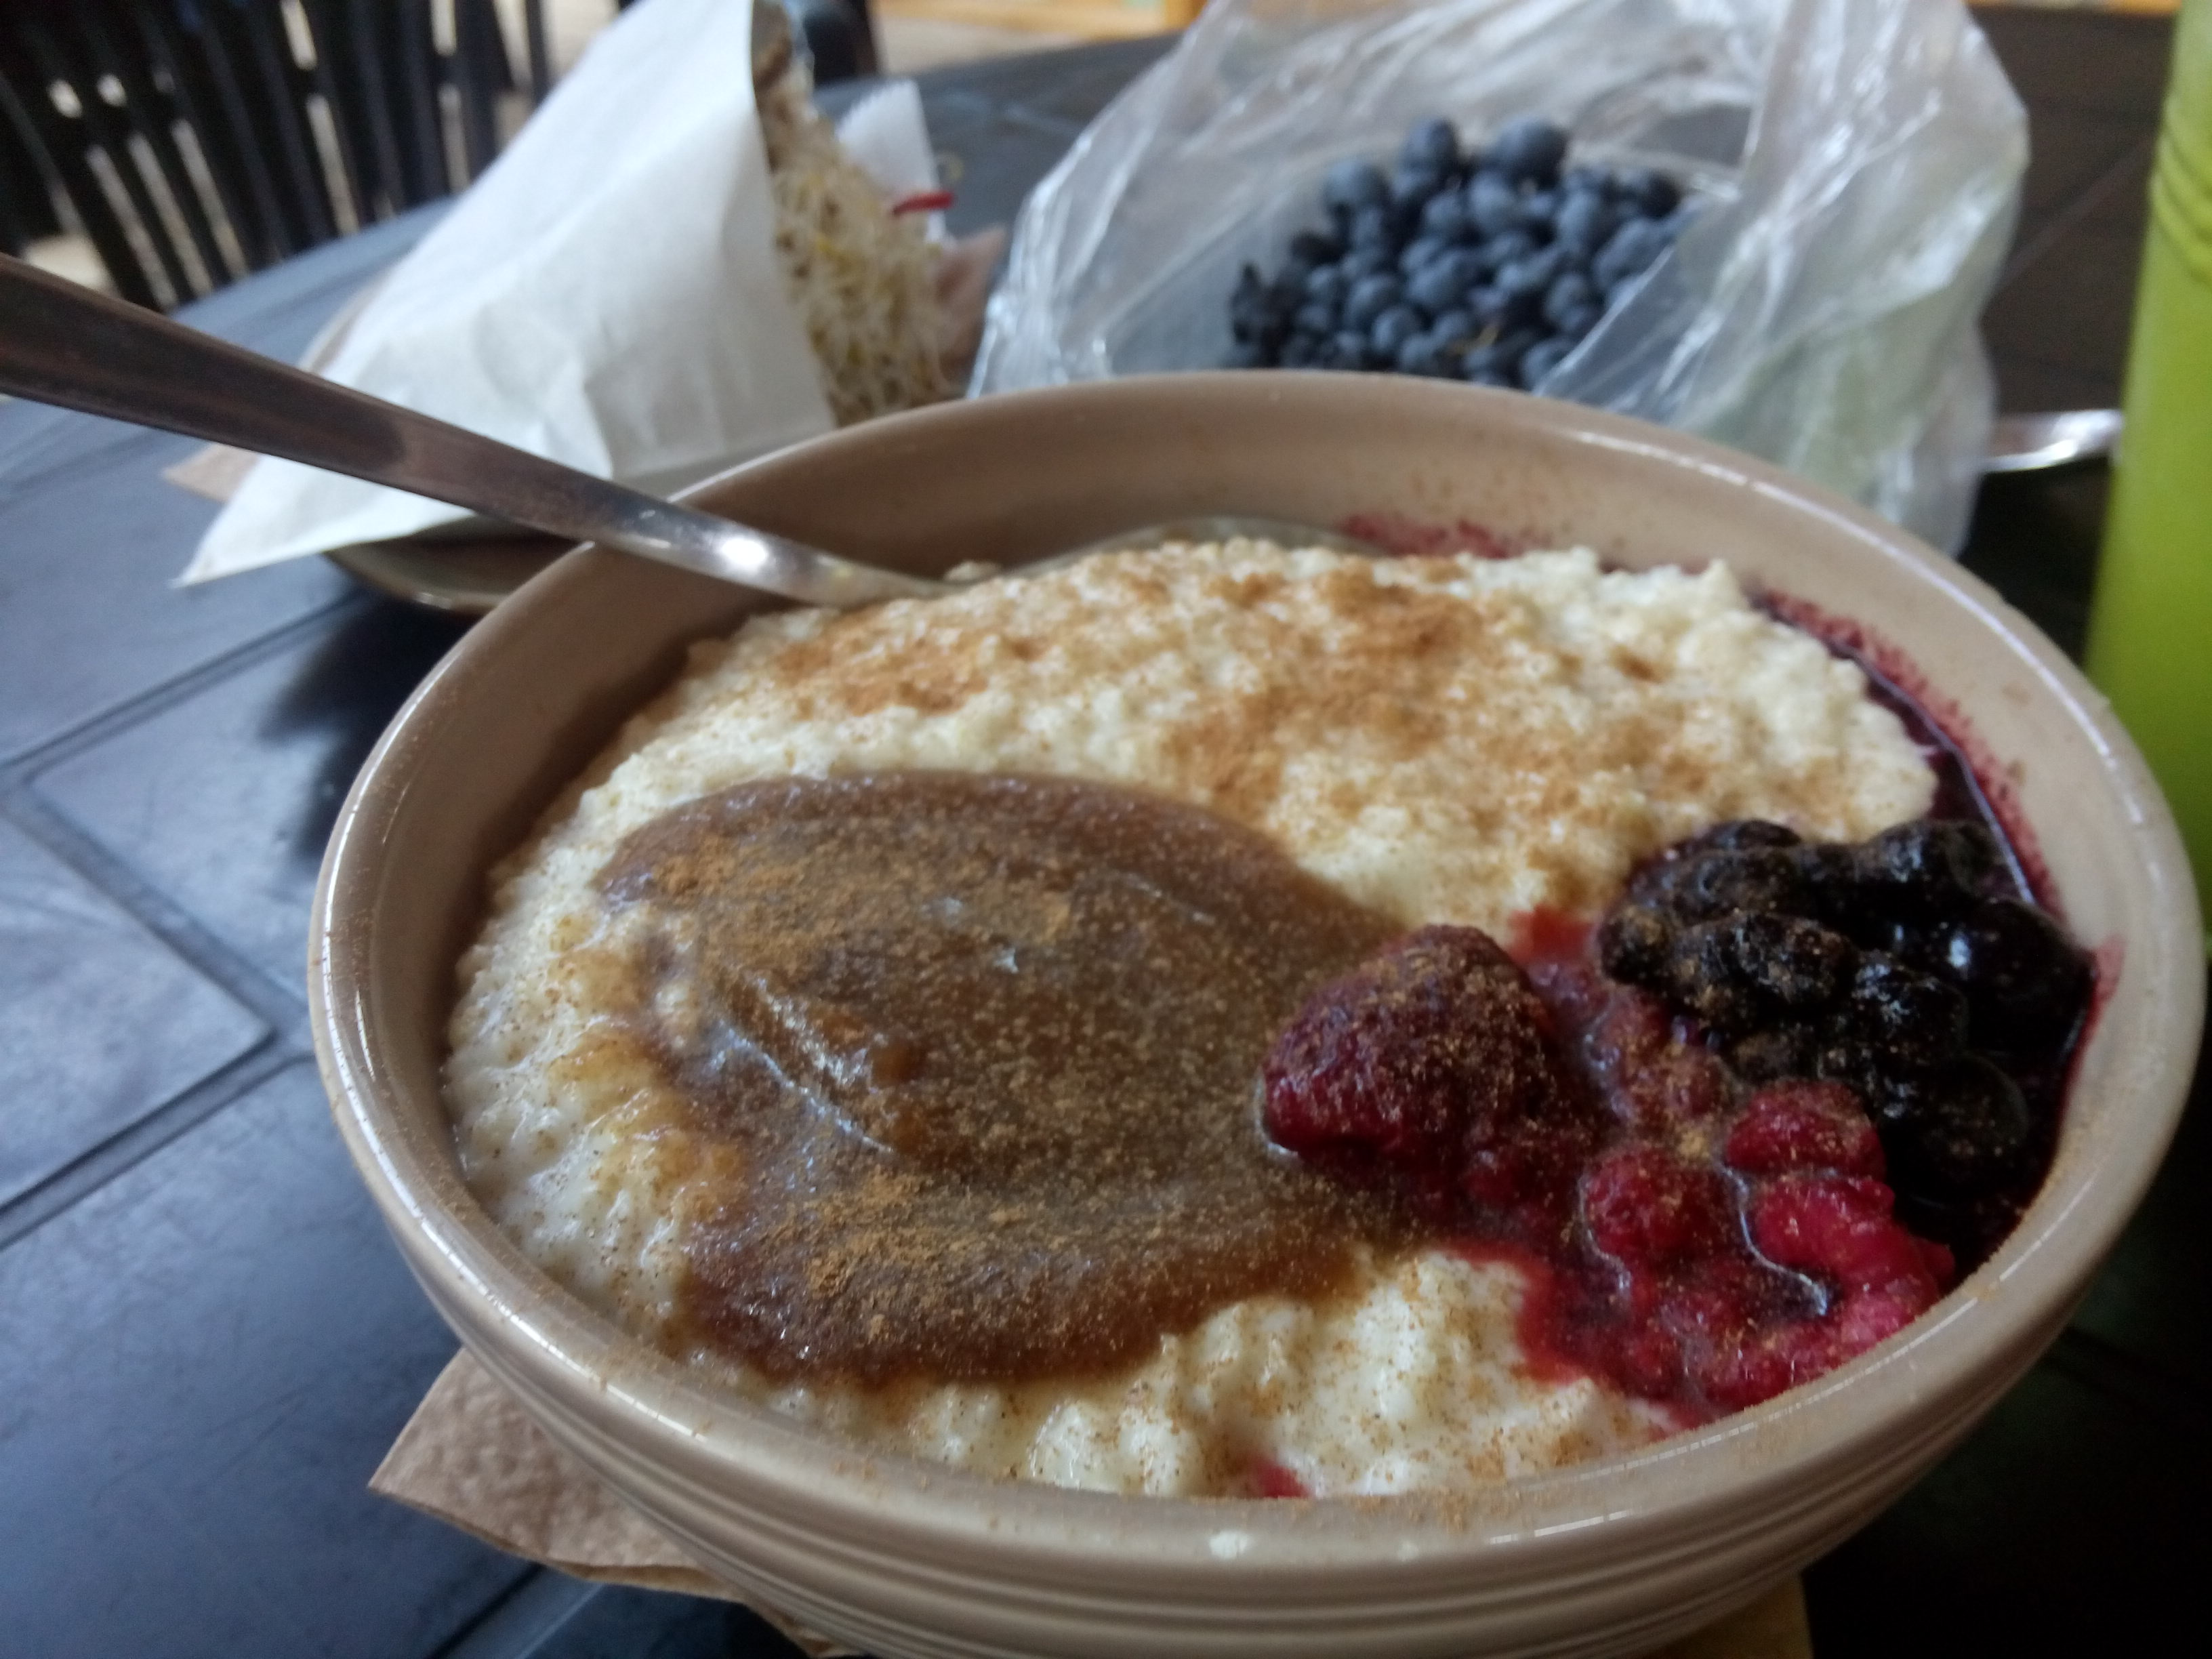 A bowl of porridge, with red and black berries, caramely sauce and cinnamon